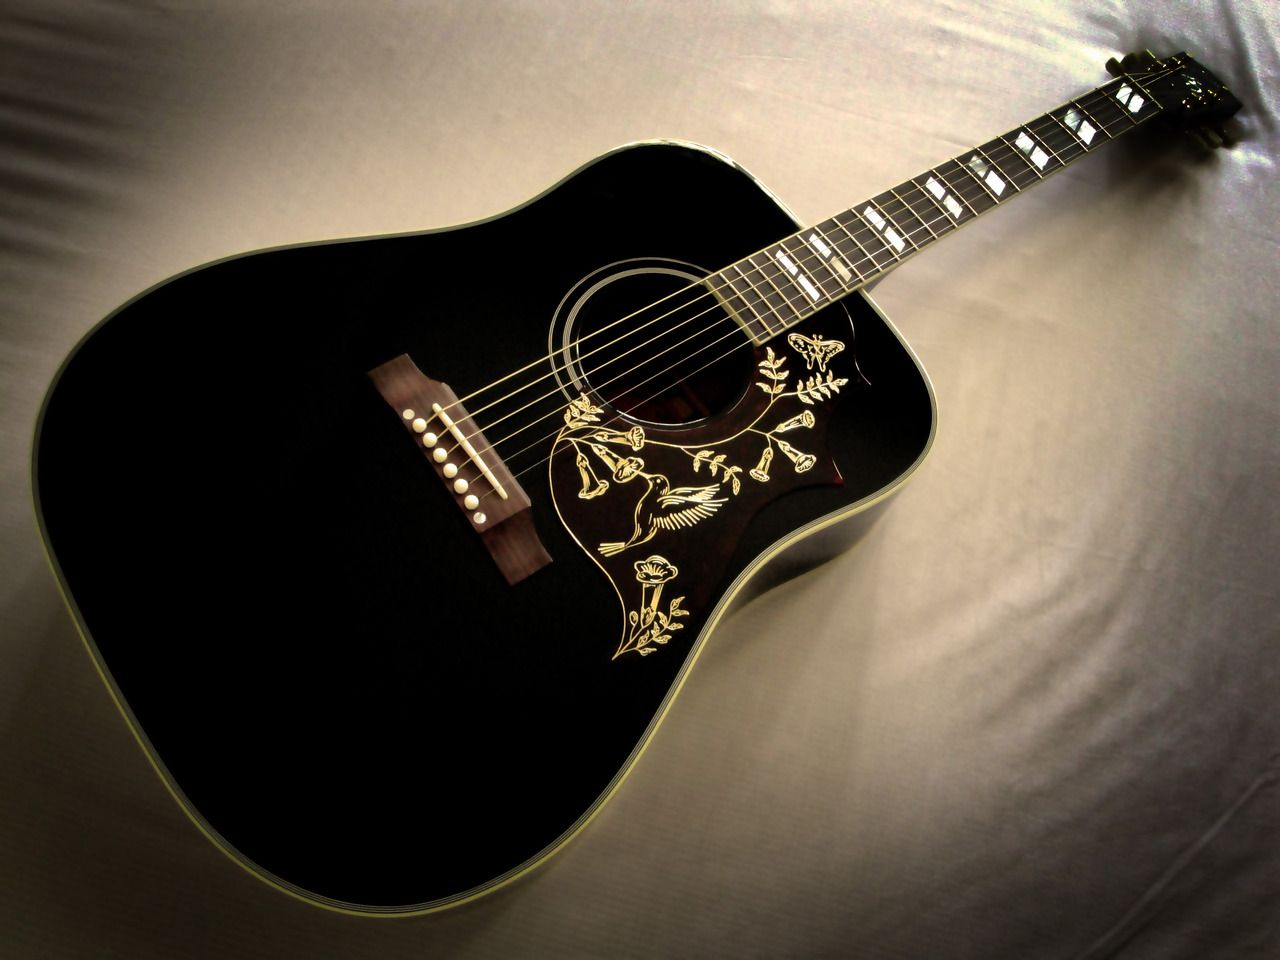 acoustic guitar gibson cerca con google guitar in 2019 learn acoustic guitar guitar. Black Bedroom Furniture Sets. Home Design Ideas